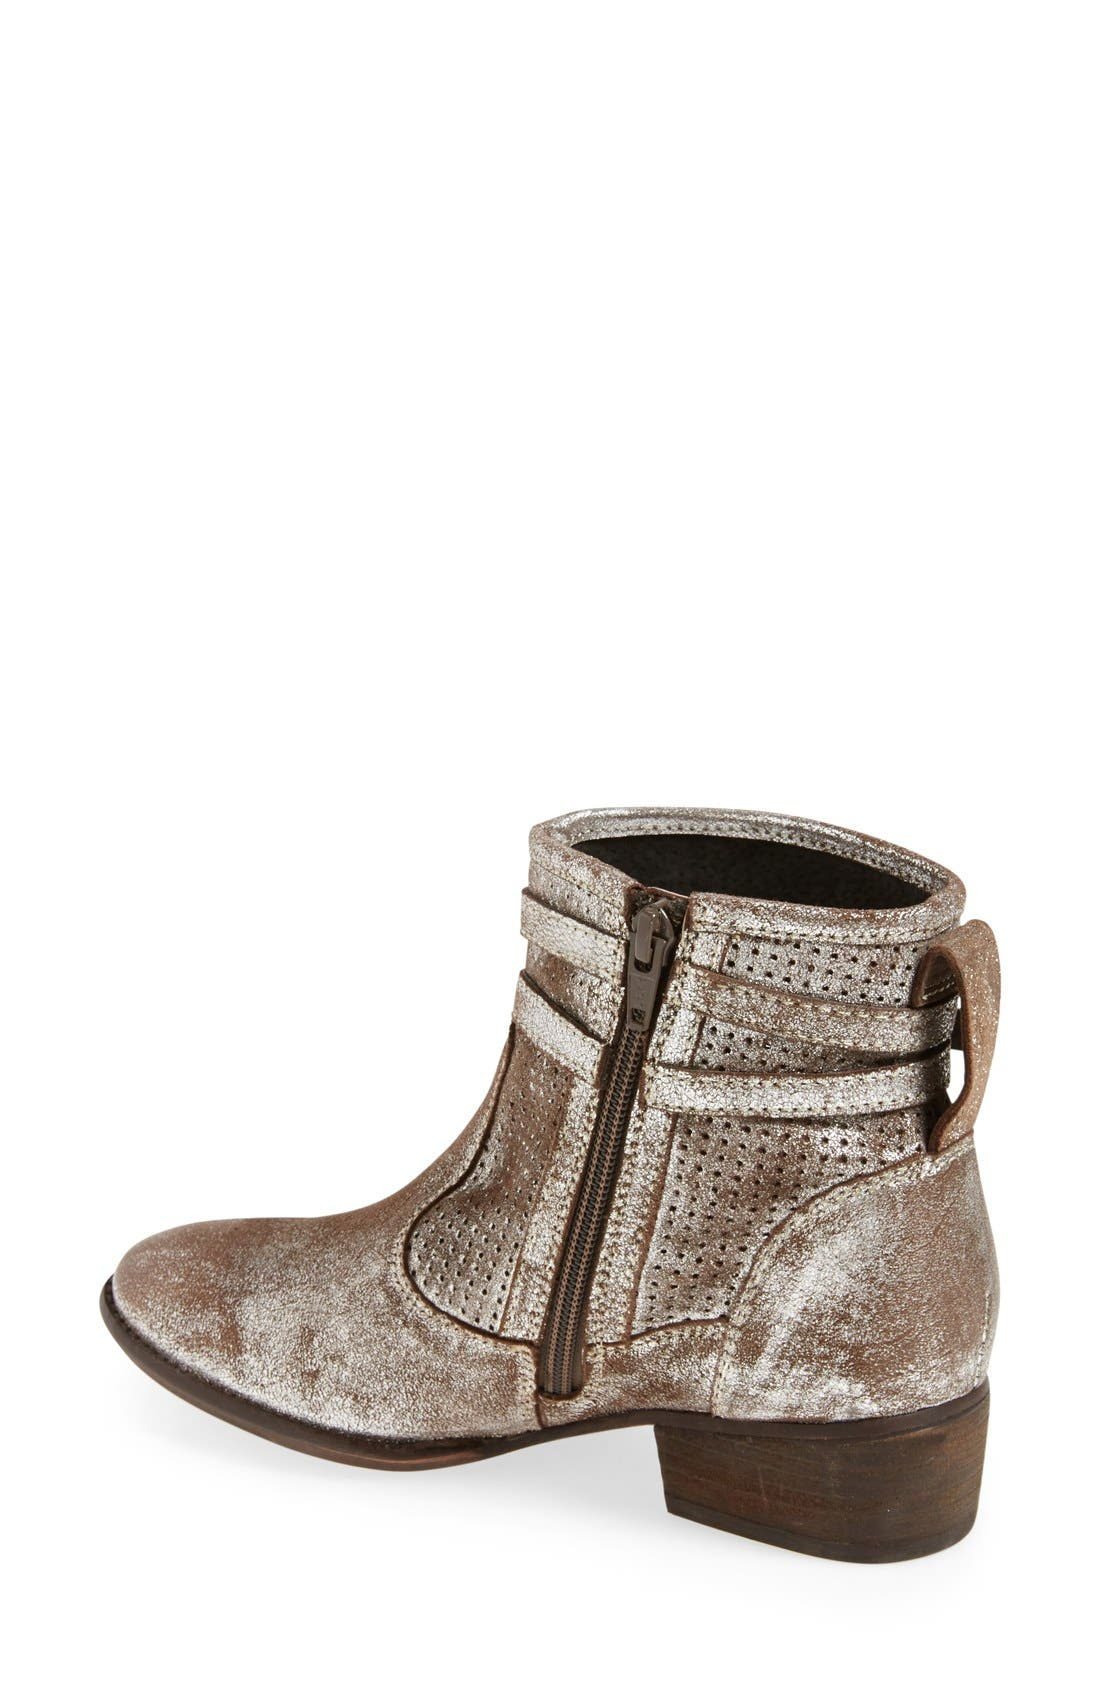 'Sanctuary' Suede Bootie,                             Alternate thumbnail 2, color,                             Pewter Suede